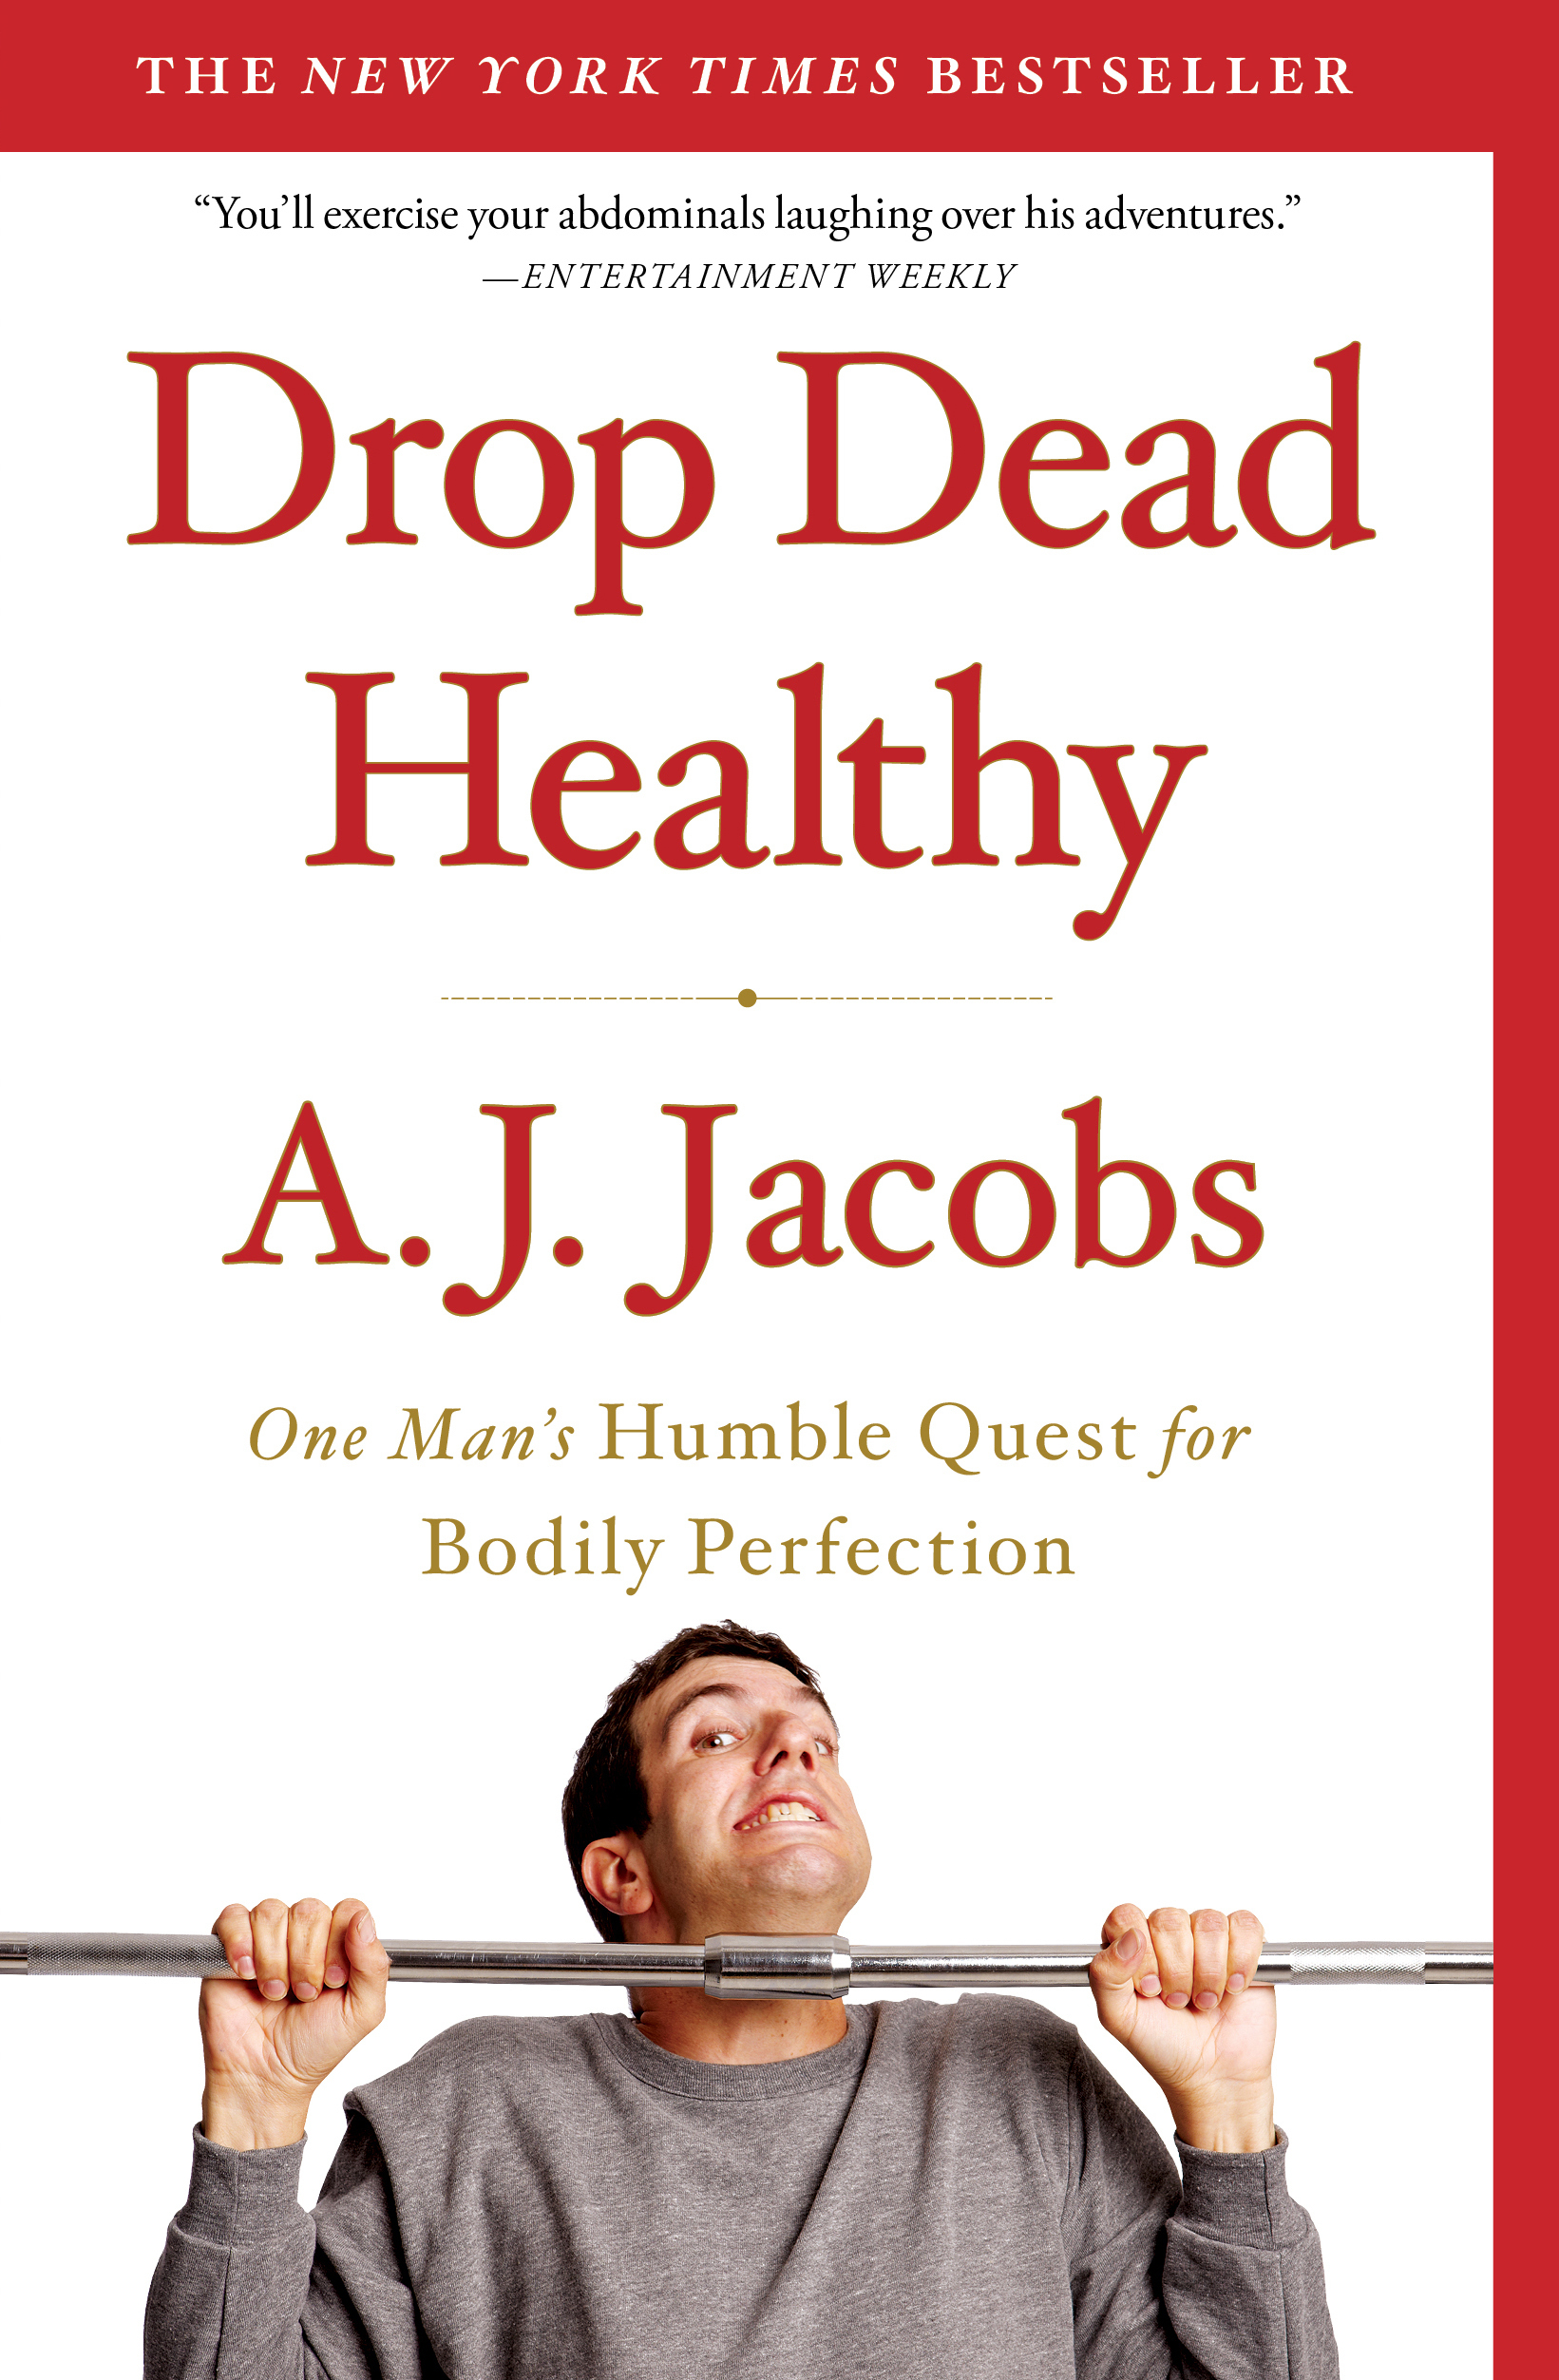 A.J. Jacobs' chronicled his quest to become the healthiest man alive in Drop Dead Healthy.